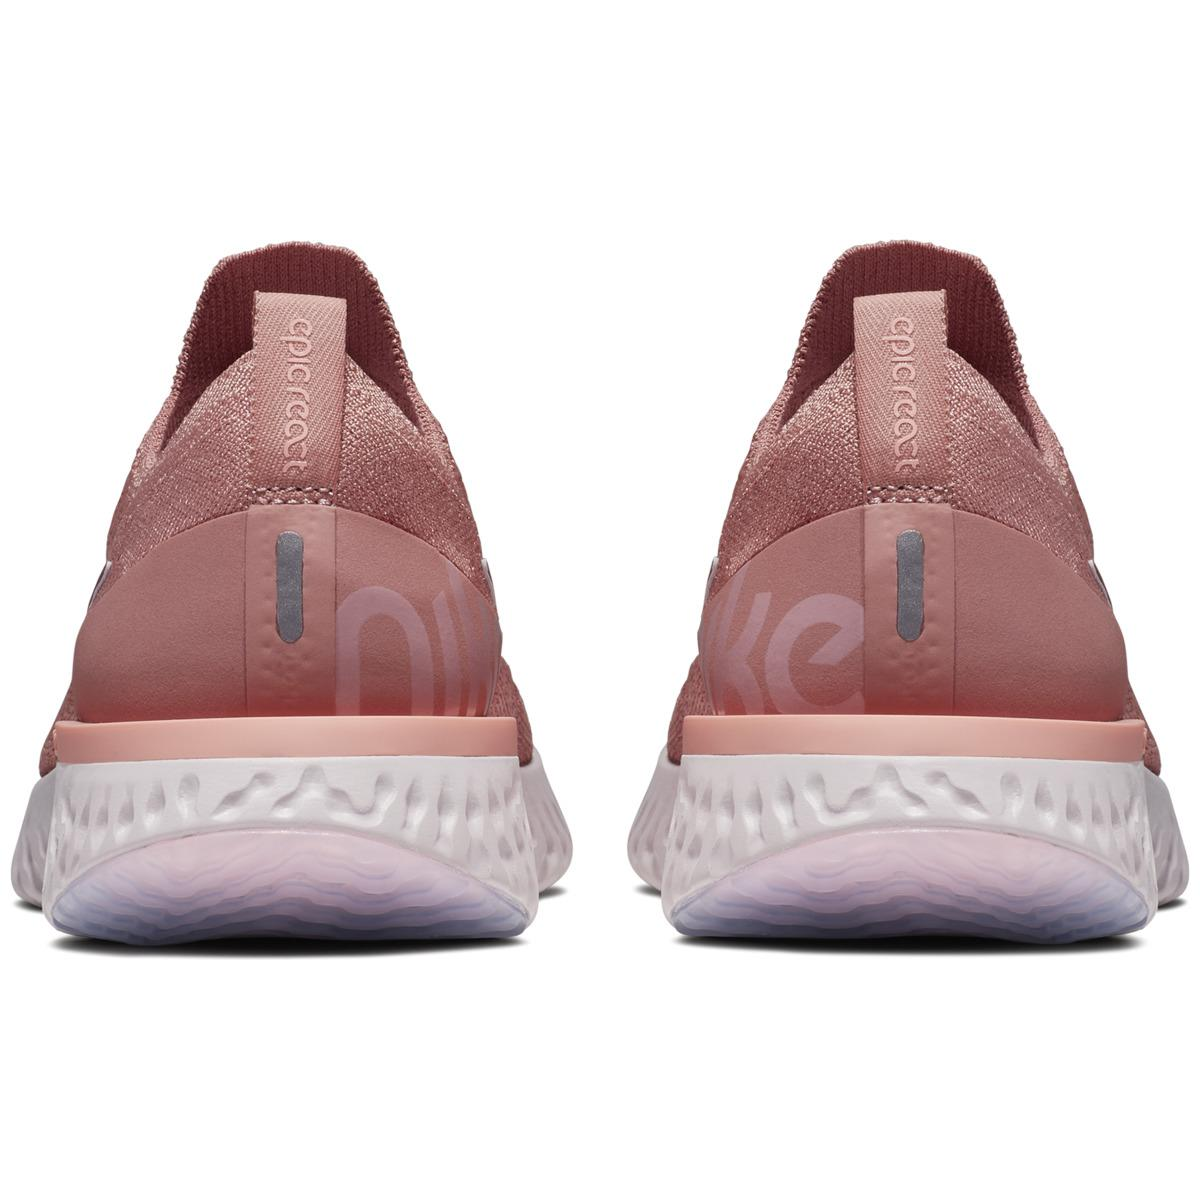 mejor servicio buscar genuino nueva temporada Nike Wmns Epic React Flyknit Competition Running Shoes in Pink - Lyst